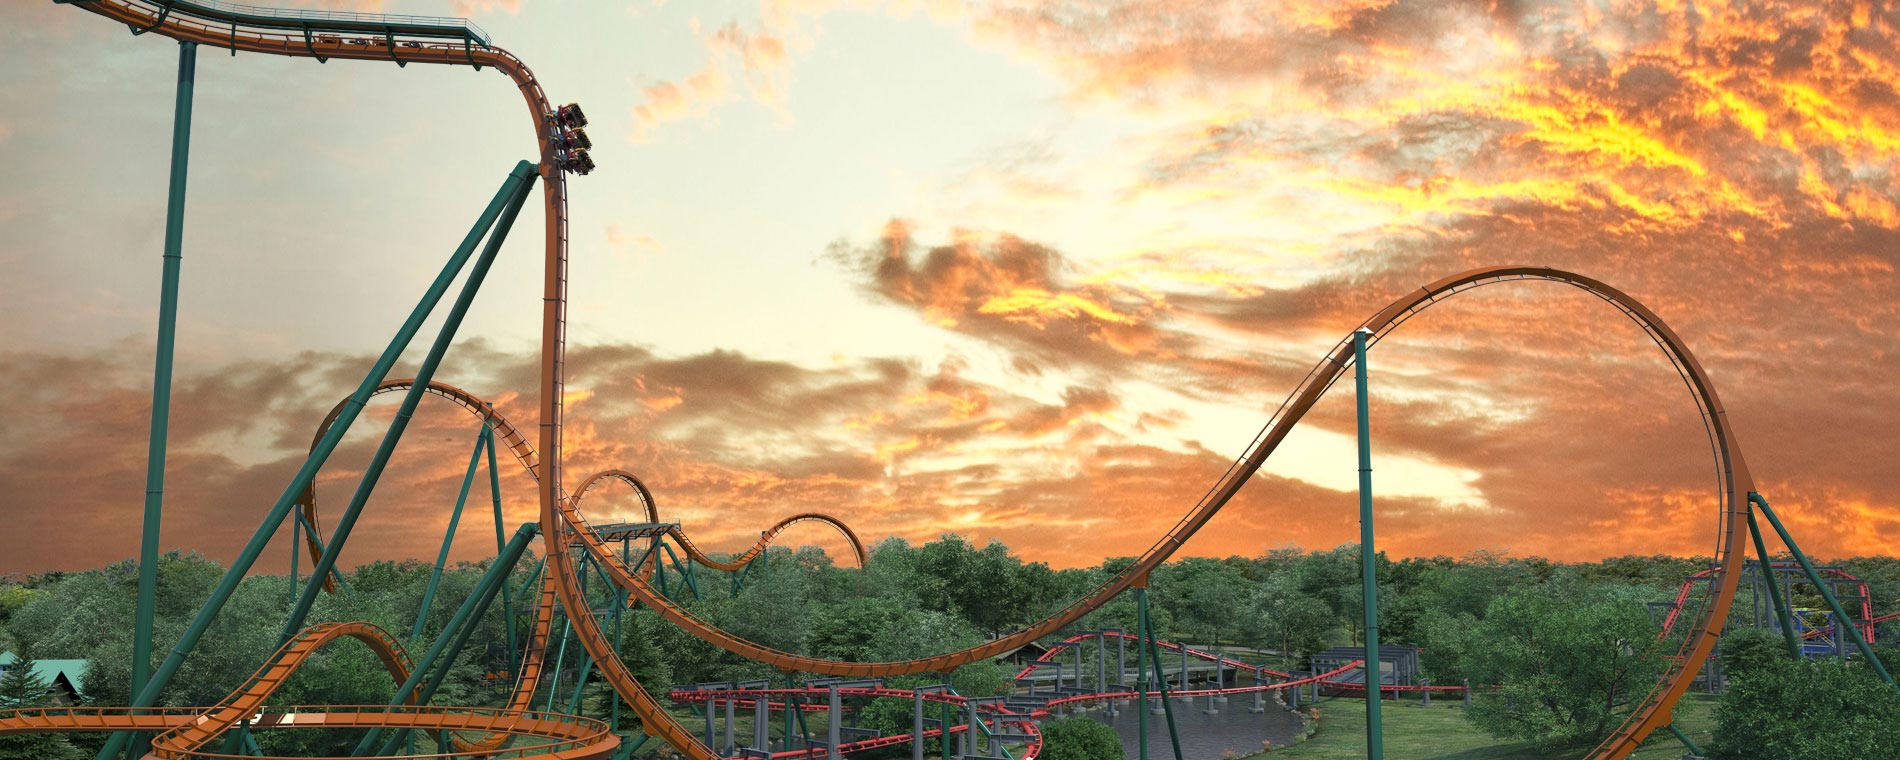 Yukon Striker Dive Coaster Opening at Canada's Wonderland in 2019